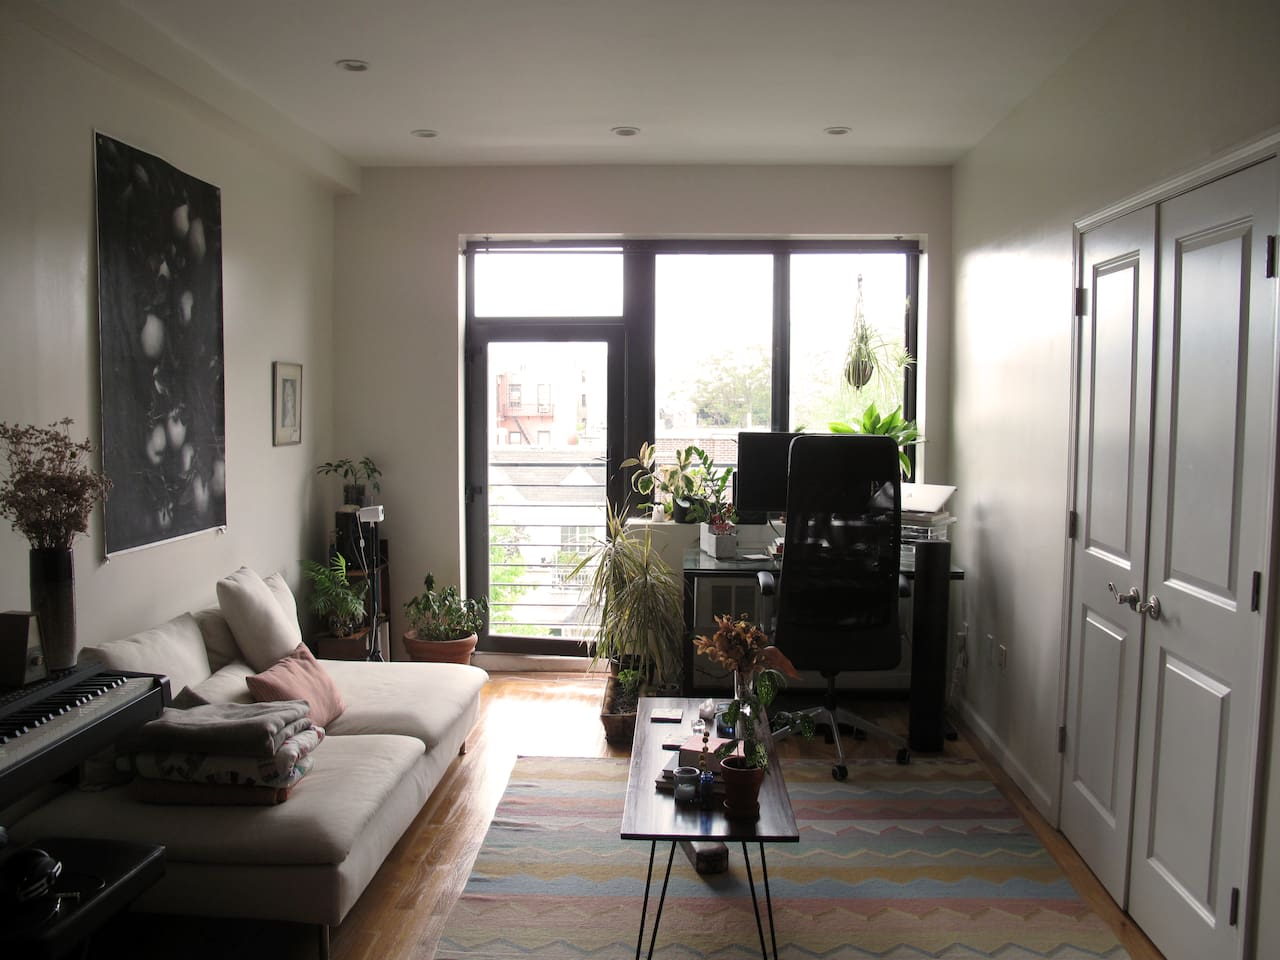 Living room with lots of sun, plants, balcony, a big couch, desk, & coffee table